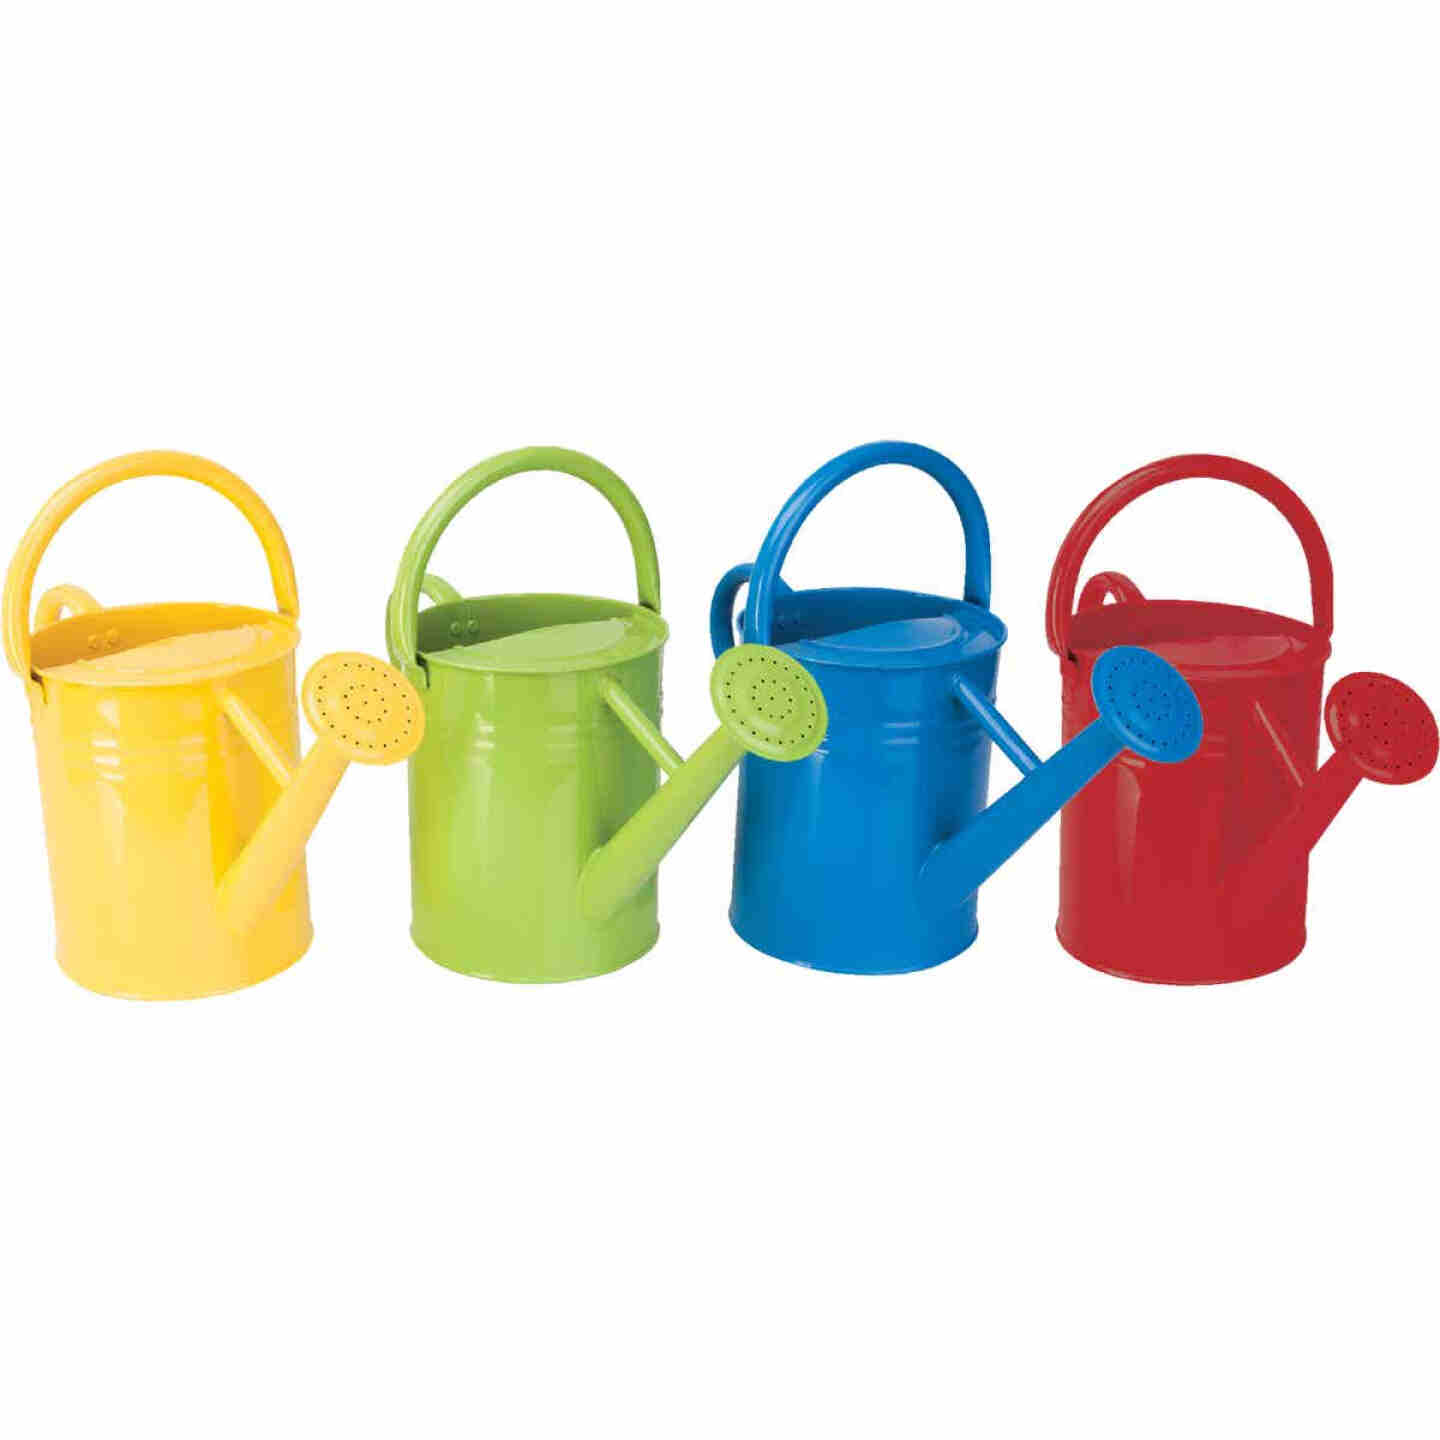 Panacea 2 Gal. Assorted Metal Watering Can Image 1